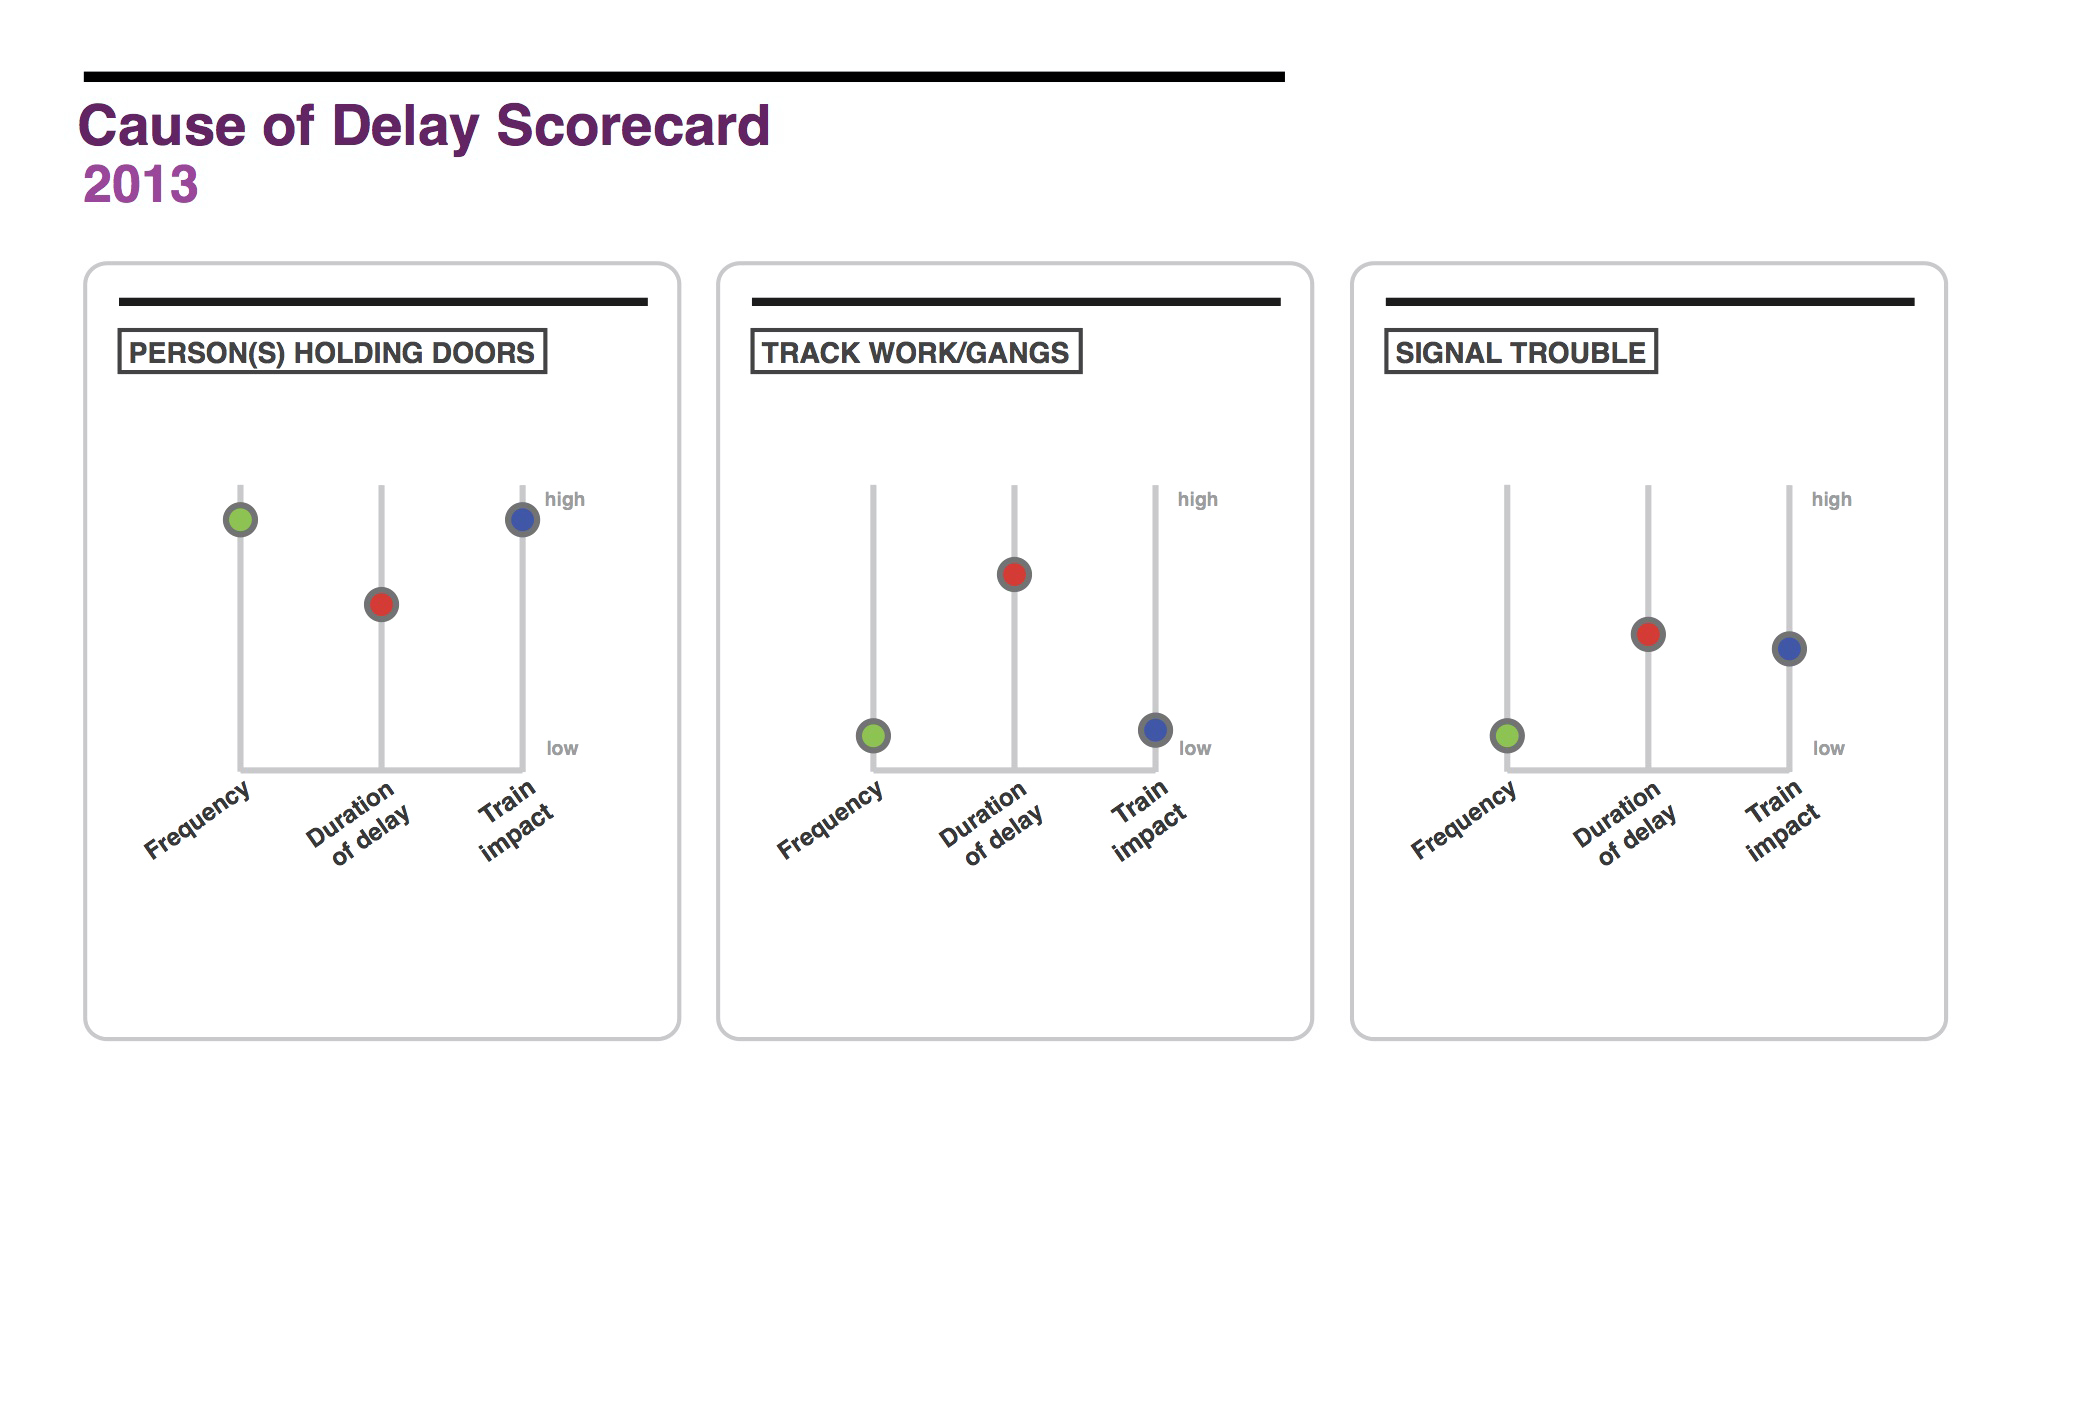 As mentioned previously, it's very hard to rank definitively and generally which delays are worse or better.  For example, a delay caused by someone holding the doors is frequent but low in number of trains delayed, whereas a delay caused by an injured person is less frequent, but high in number of trains delayed.   So, we decided to design scorecards for each cause that can communicate their impact across all metrics at a glance.   An MTA board member would be able to compare different causes as well as metrics within causes.